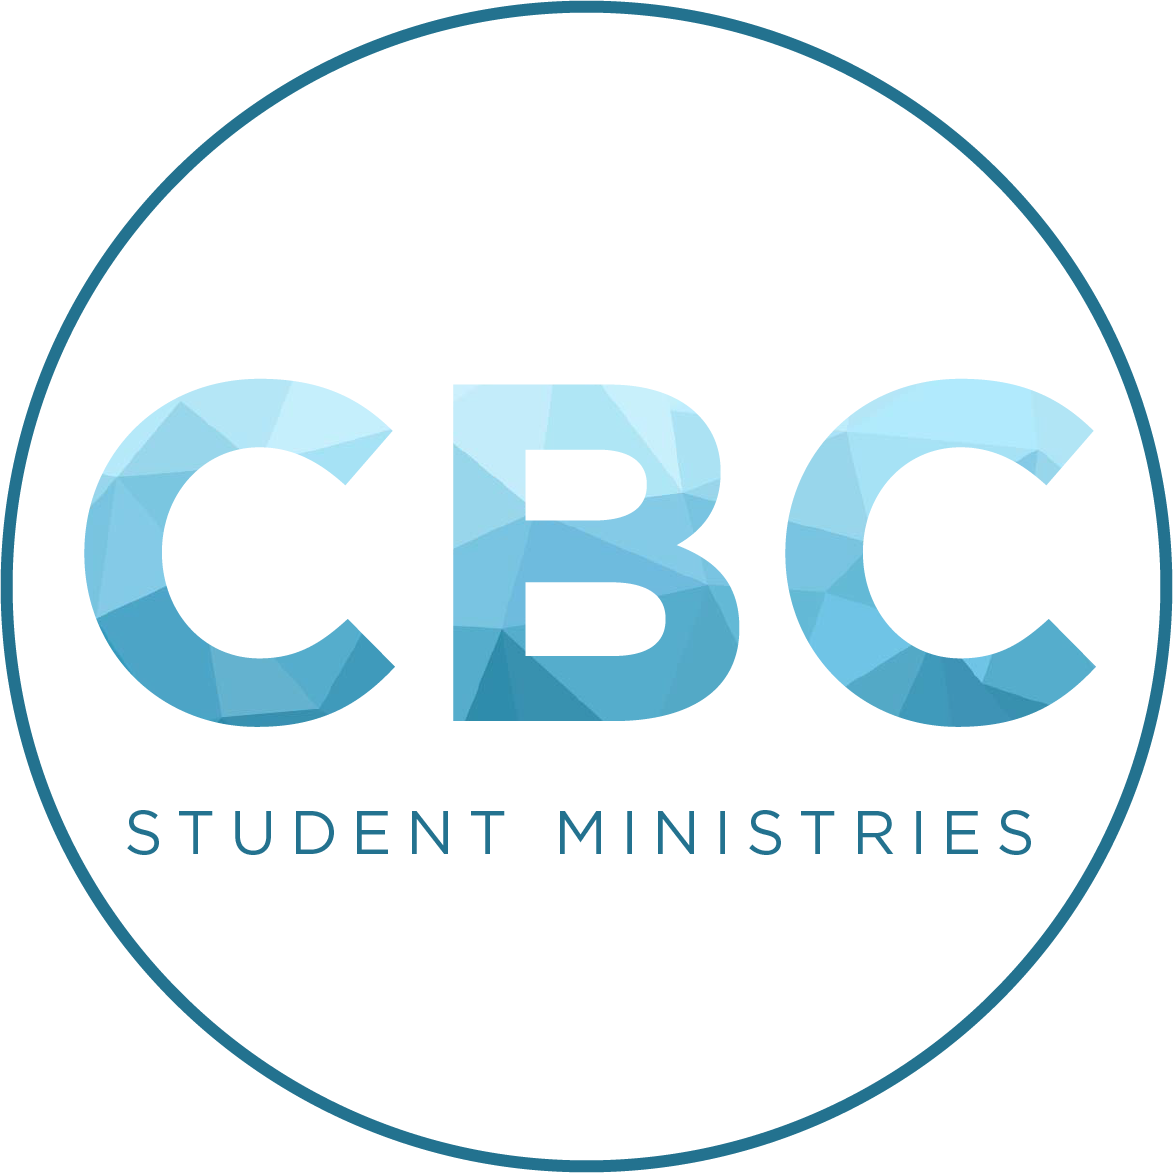 CBC Students Blue image